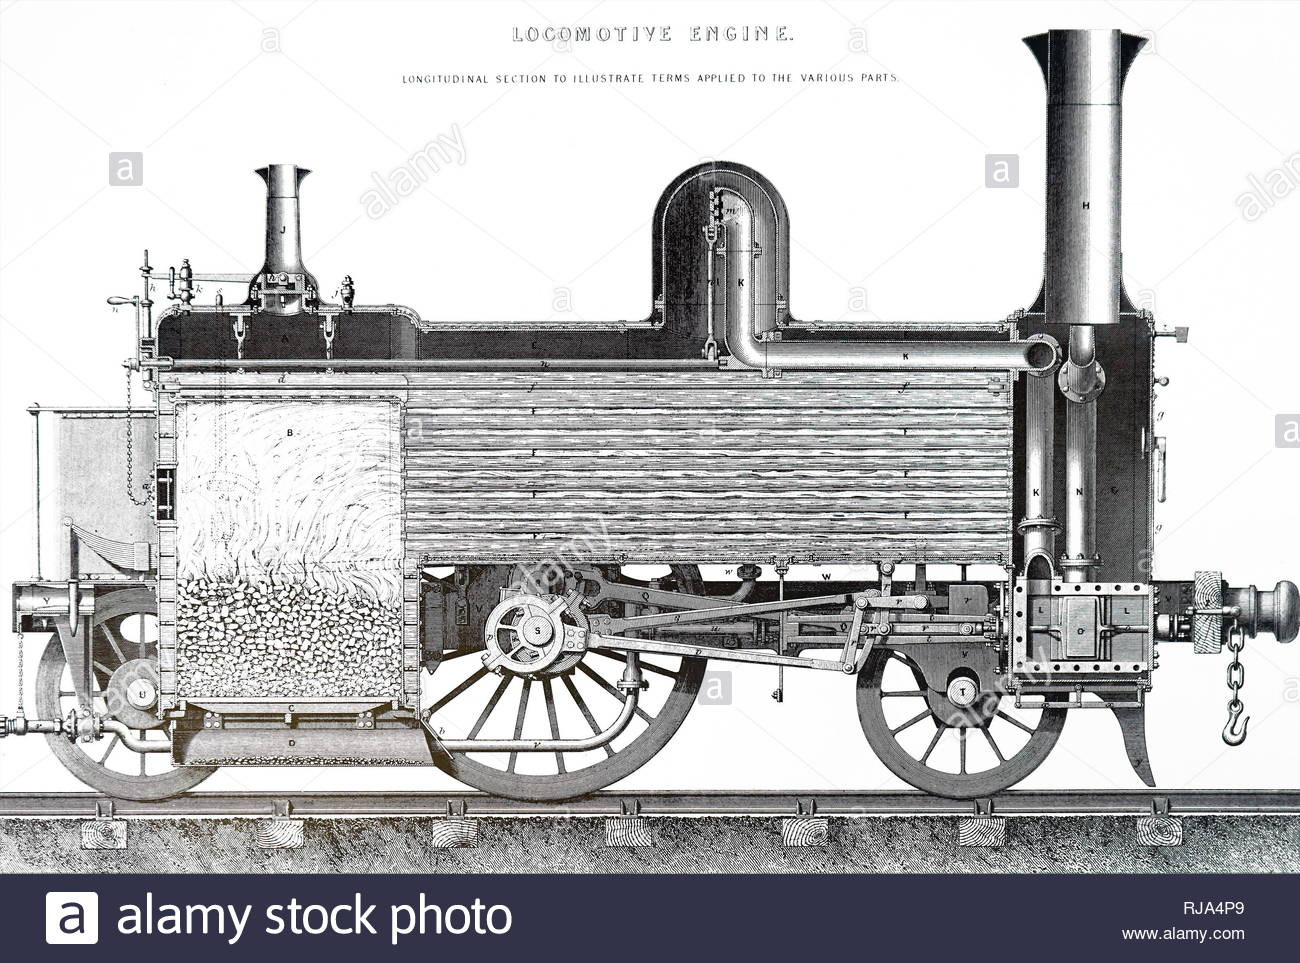 Sectional view of a typical British passenger locomotive. A) Fire-box shell, B) Internal fire-box, C) Grate or fire-bars, D) Ash-pan, E) Cylindrical part of boiler, F) Flume-tubes, G) Smoke-box, H) Chimney, I) Steam-dome, J) Steam-chimney, K) Steam-pipe, L) Valve-chest of cylinder, M) Steam-cylinder (not seen),  N) Exhaust and blast pipe, O) Slide-valve, P) Piston-rod (not seen), Q) Connecting-rod, R) Driving-crank, S) Driving or crank axle, T) Fore-axle, U) Hind-axle, V) Inside framing, W) Outside framing, X) Foot-plate, Y) Draw-plates, Z) Buffer-beam, a) Fire-door, b) Draught-regulator or as - Stock Image